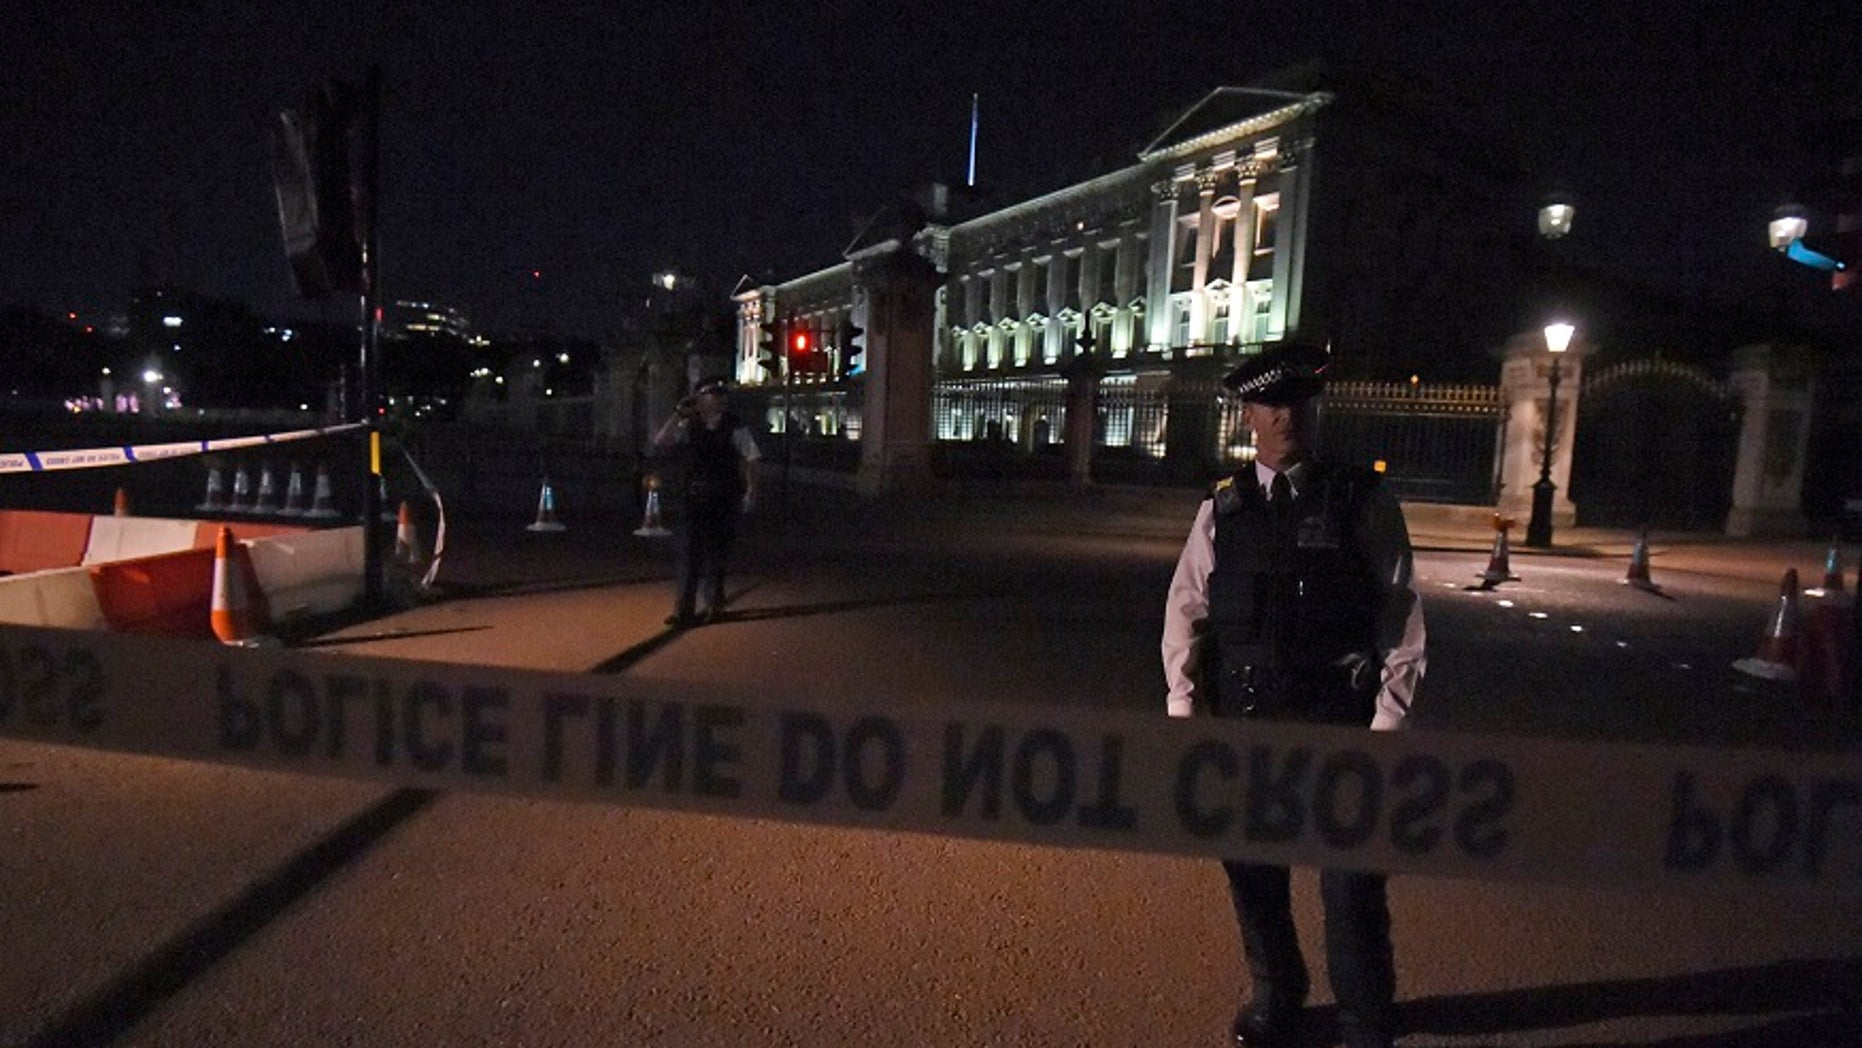 London police cordoned the area outside the Buckingham Palace after a man was arrested nearby.